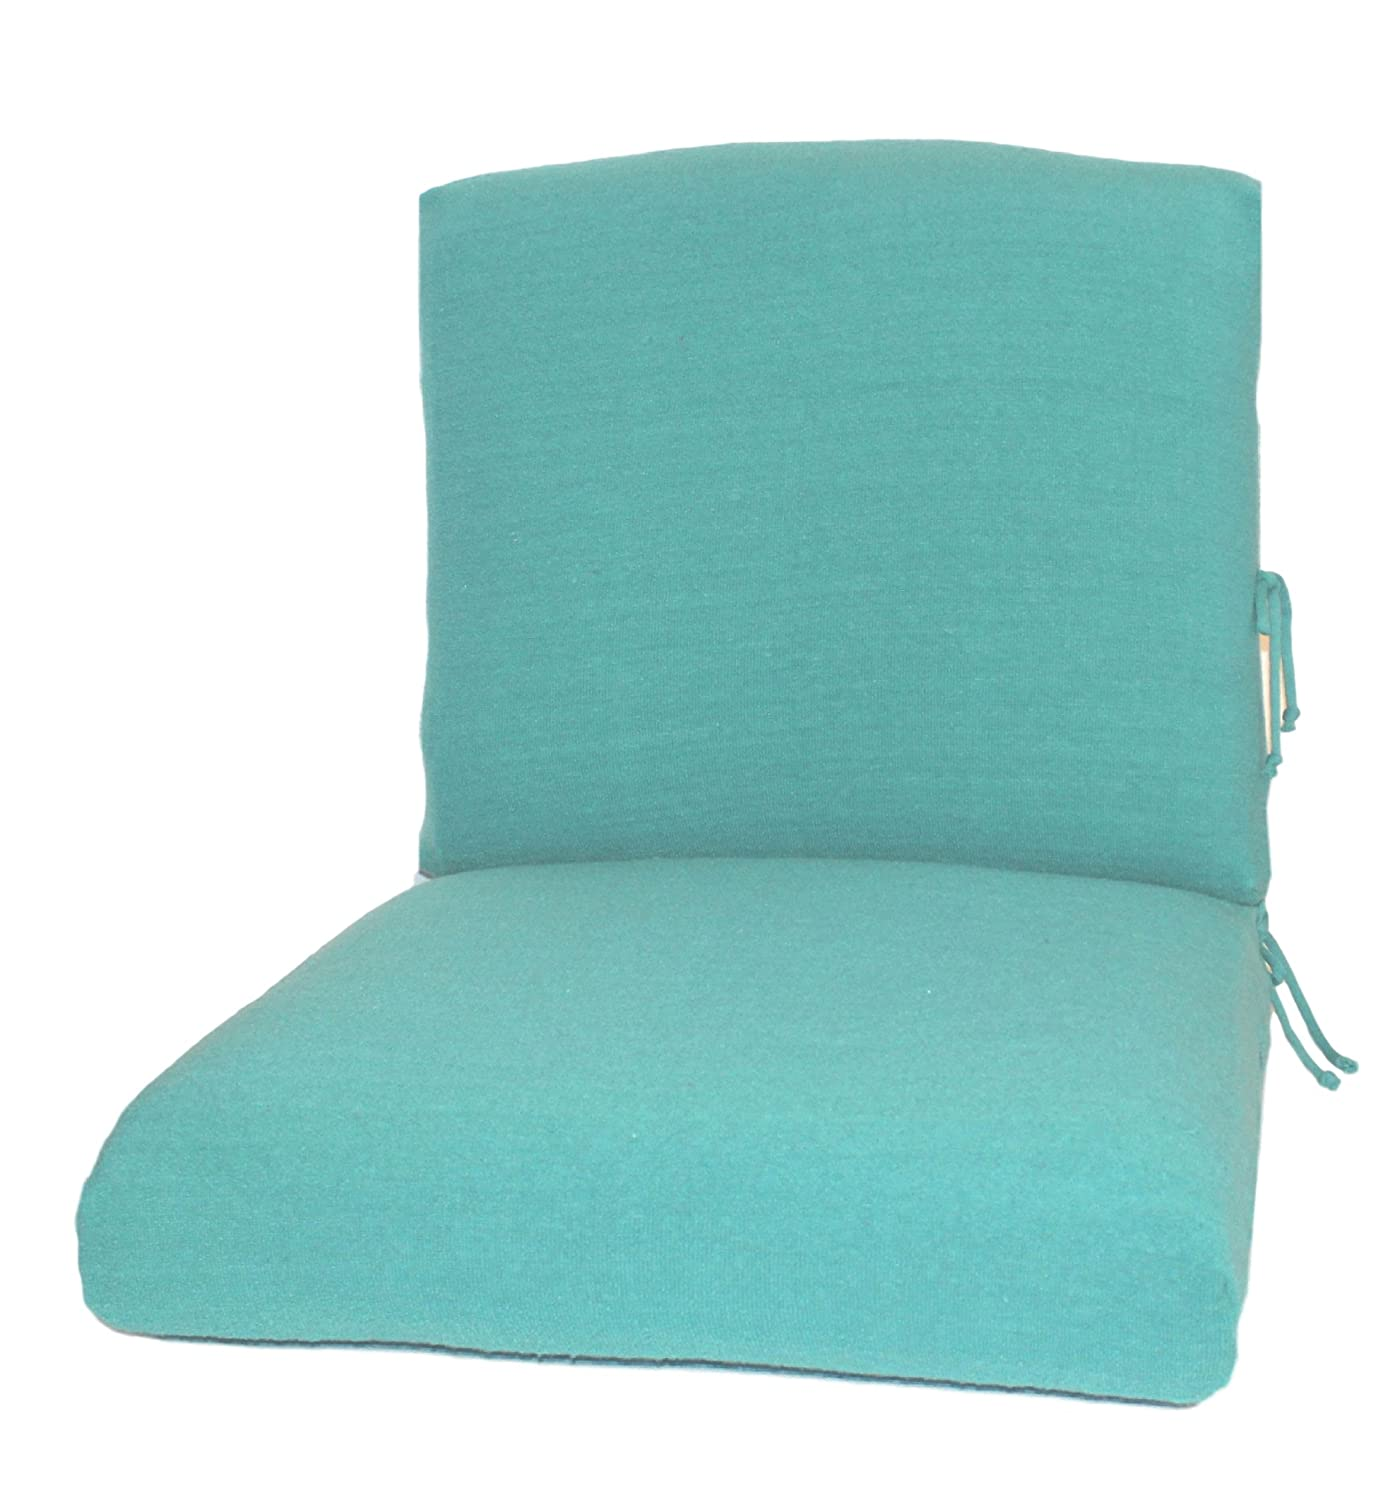 CushyChic Outdoors Terry Slipcovers for Deep Seat Patio Cushions, 2 Piece in Aruba – Slipcovers Only – Cushion Inserts NOT Included